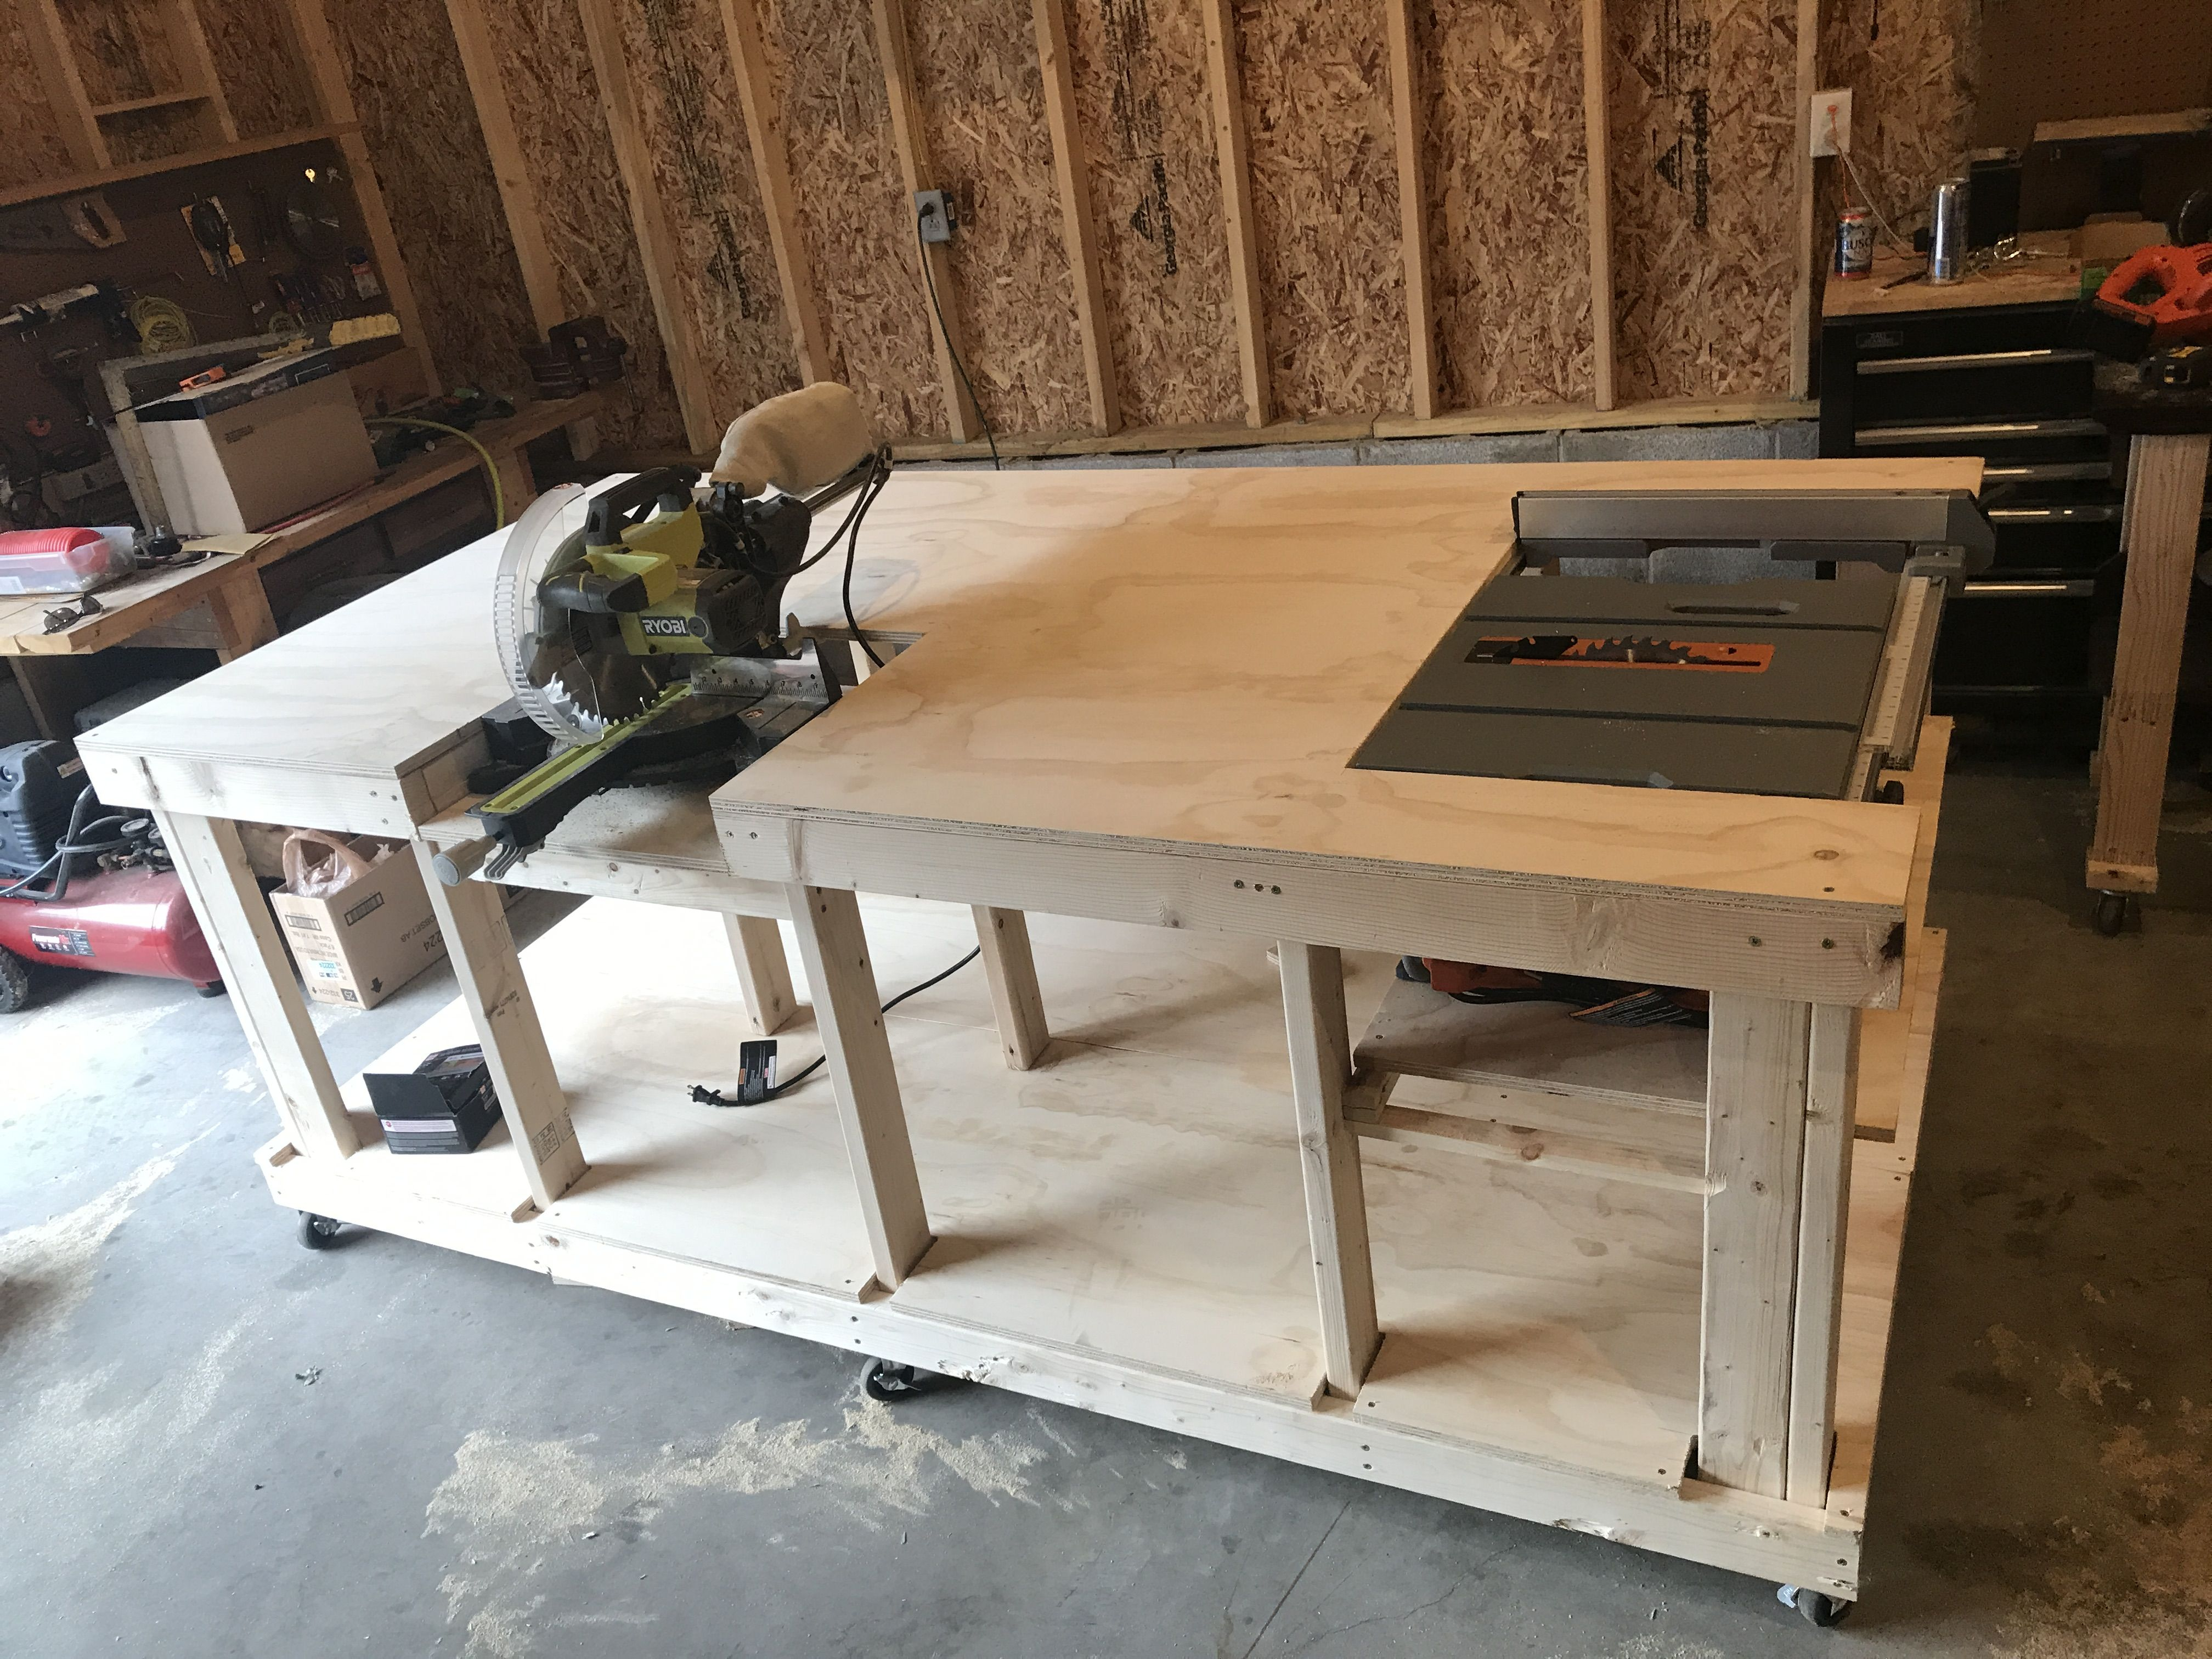 Wondrous Ultimate Workbench I Wanted To Build A Mobile Workbench Customarchery Wood Chair Design Ideas Customarcherynet